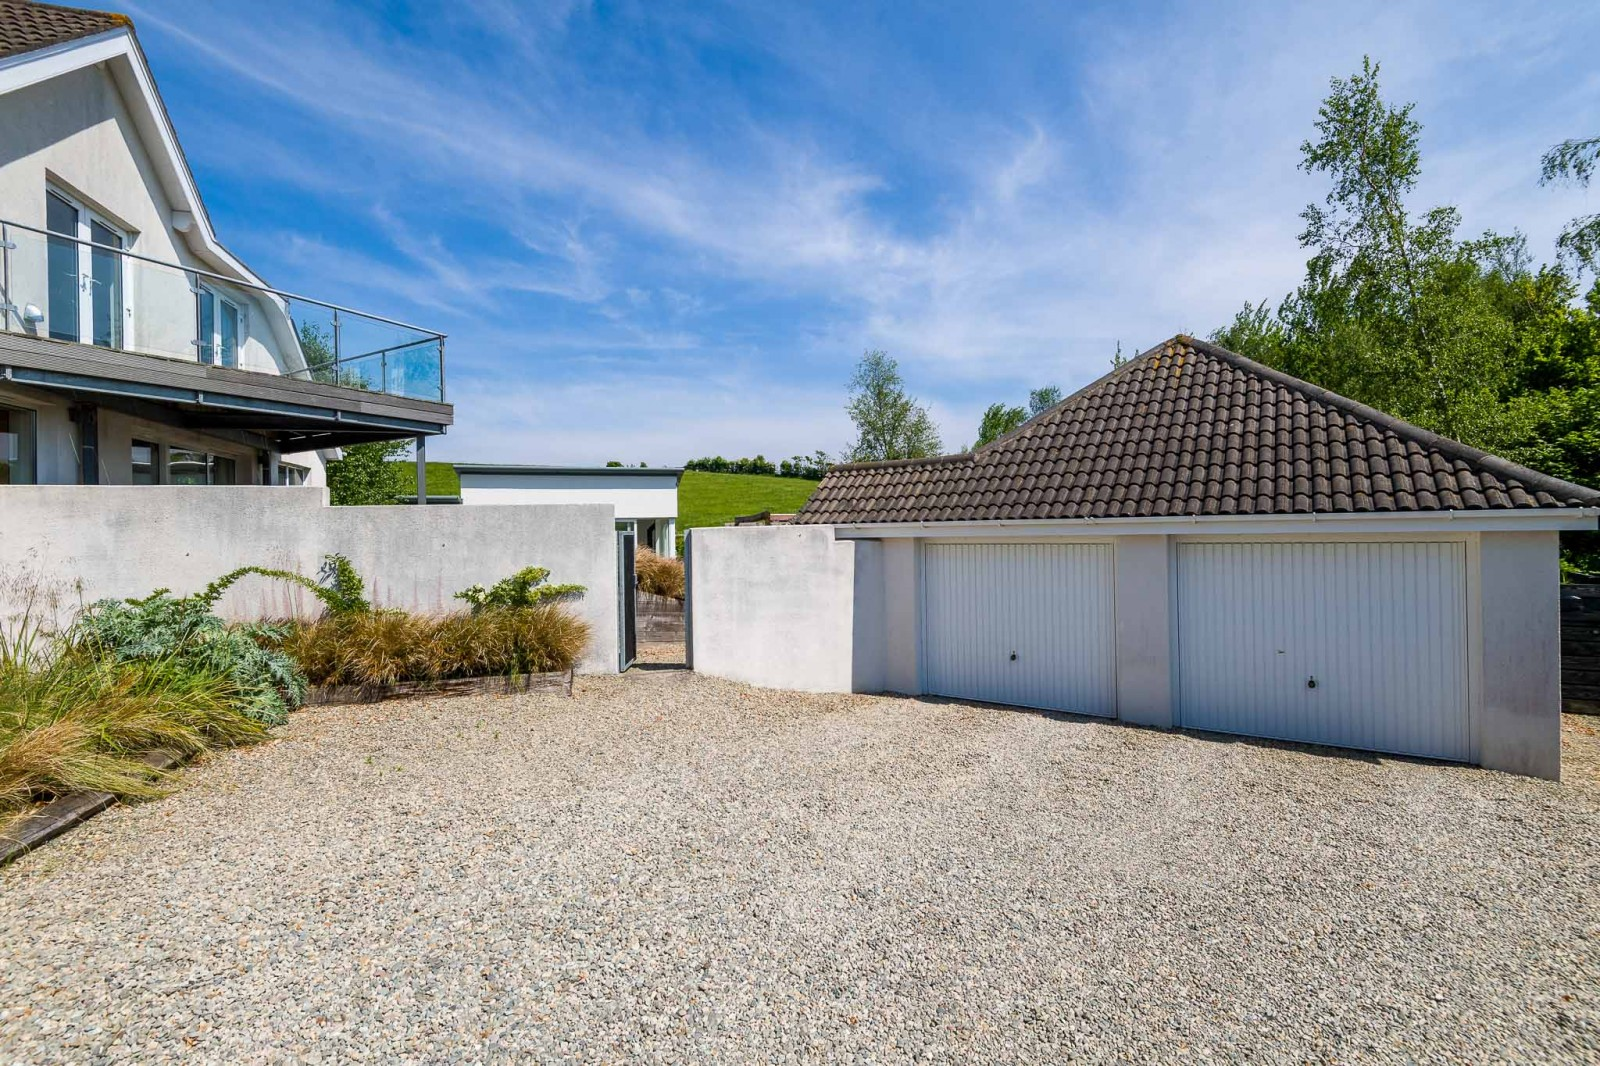 12 Trench Road, Killinchy